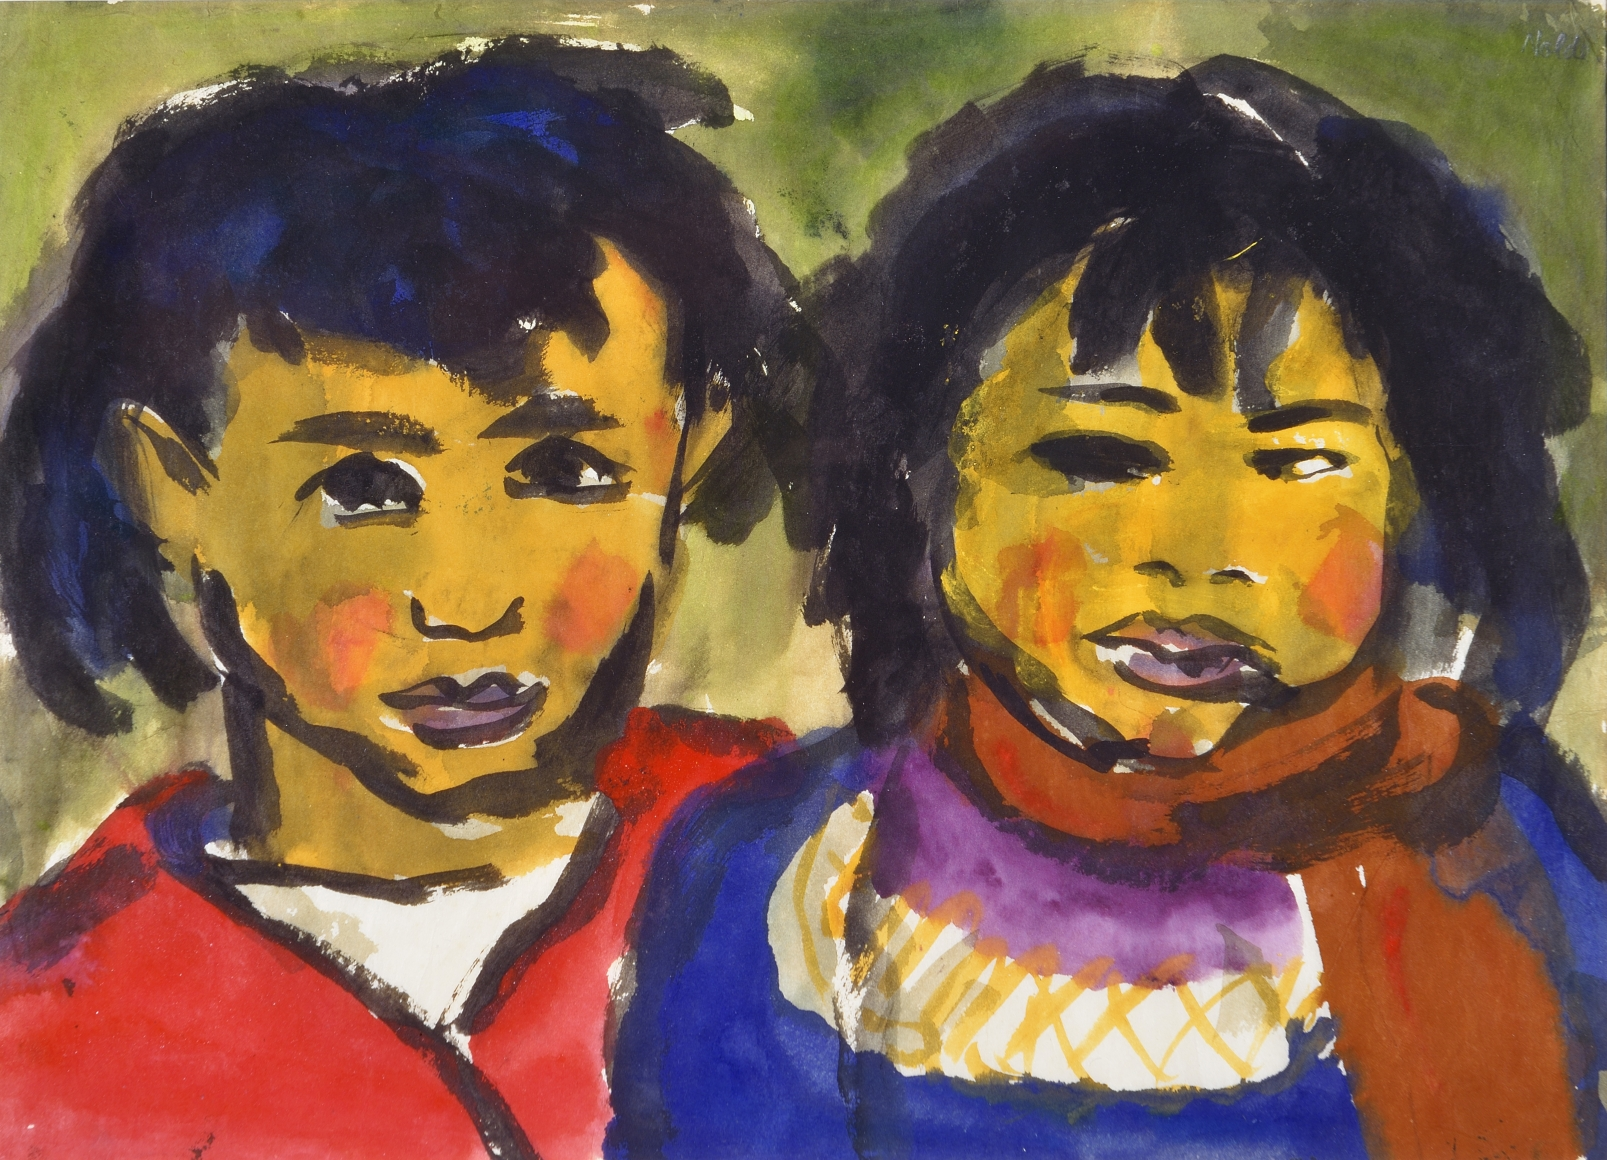 Emil Nolde, Two Children, c. 1918, Watercolor on paper, 13 3/4 x 18 1/2 in. (34.9 x 47 cm)